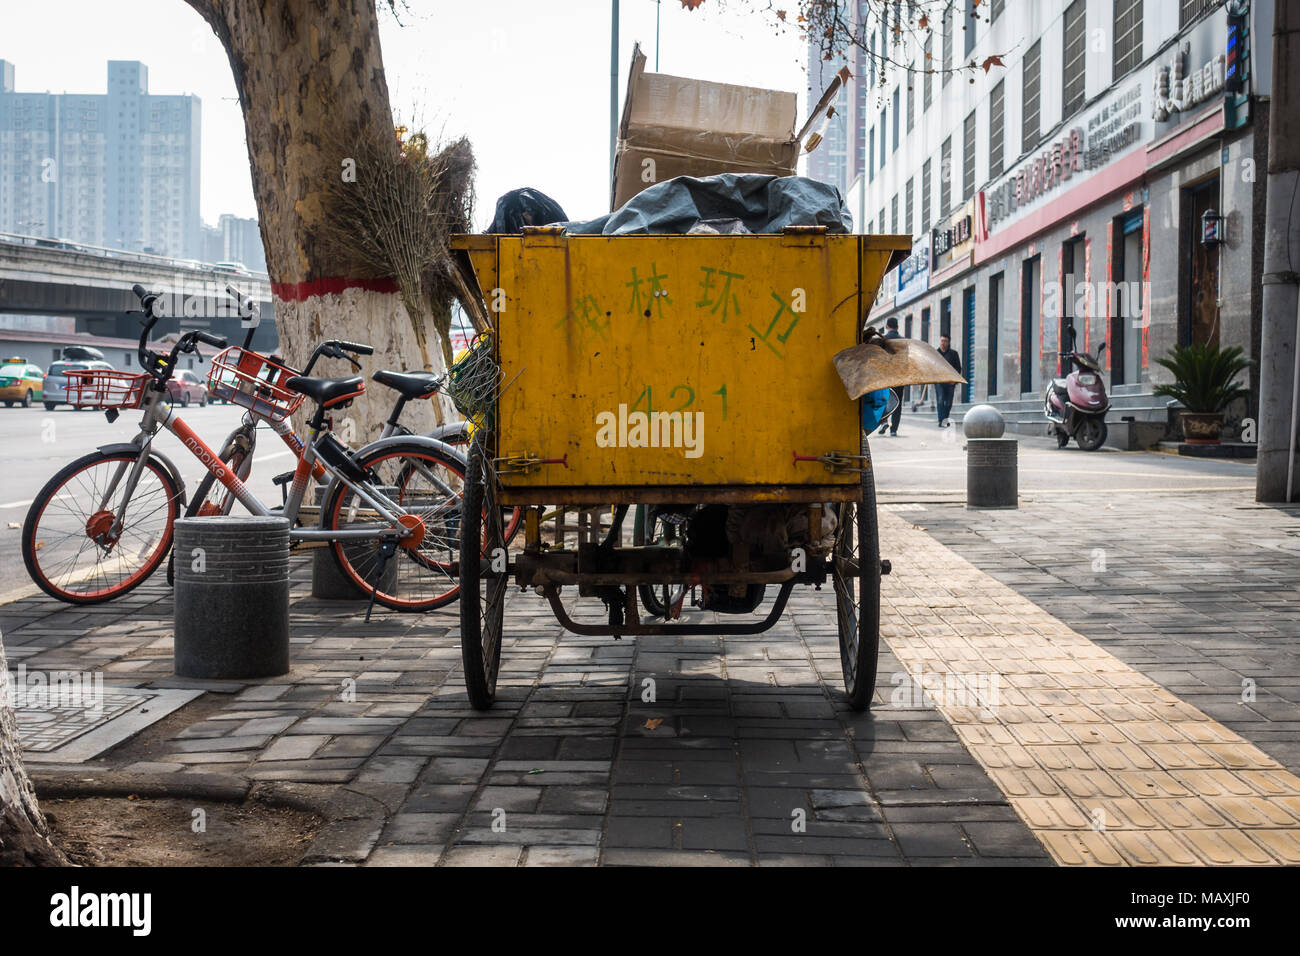 Chinese Trash Collection Wagon Parked on the Sidewalk During Workday in Xian, March 2018 - Stock Image